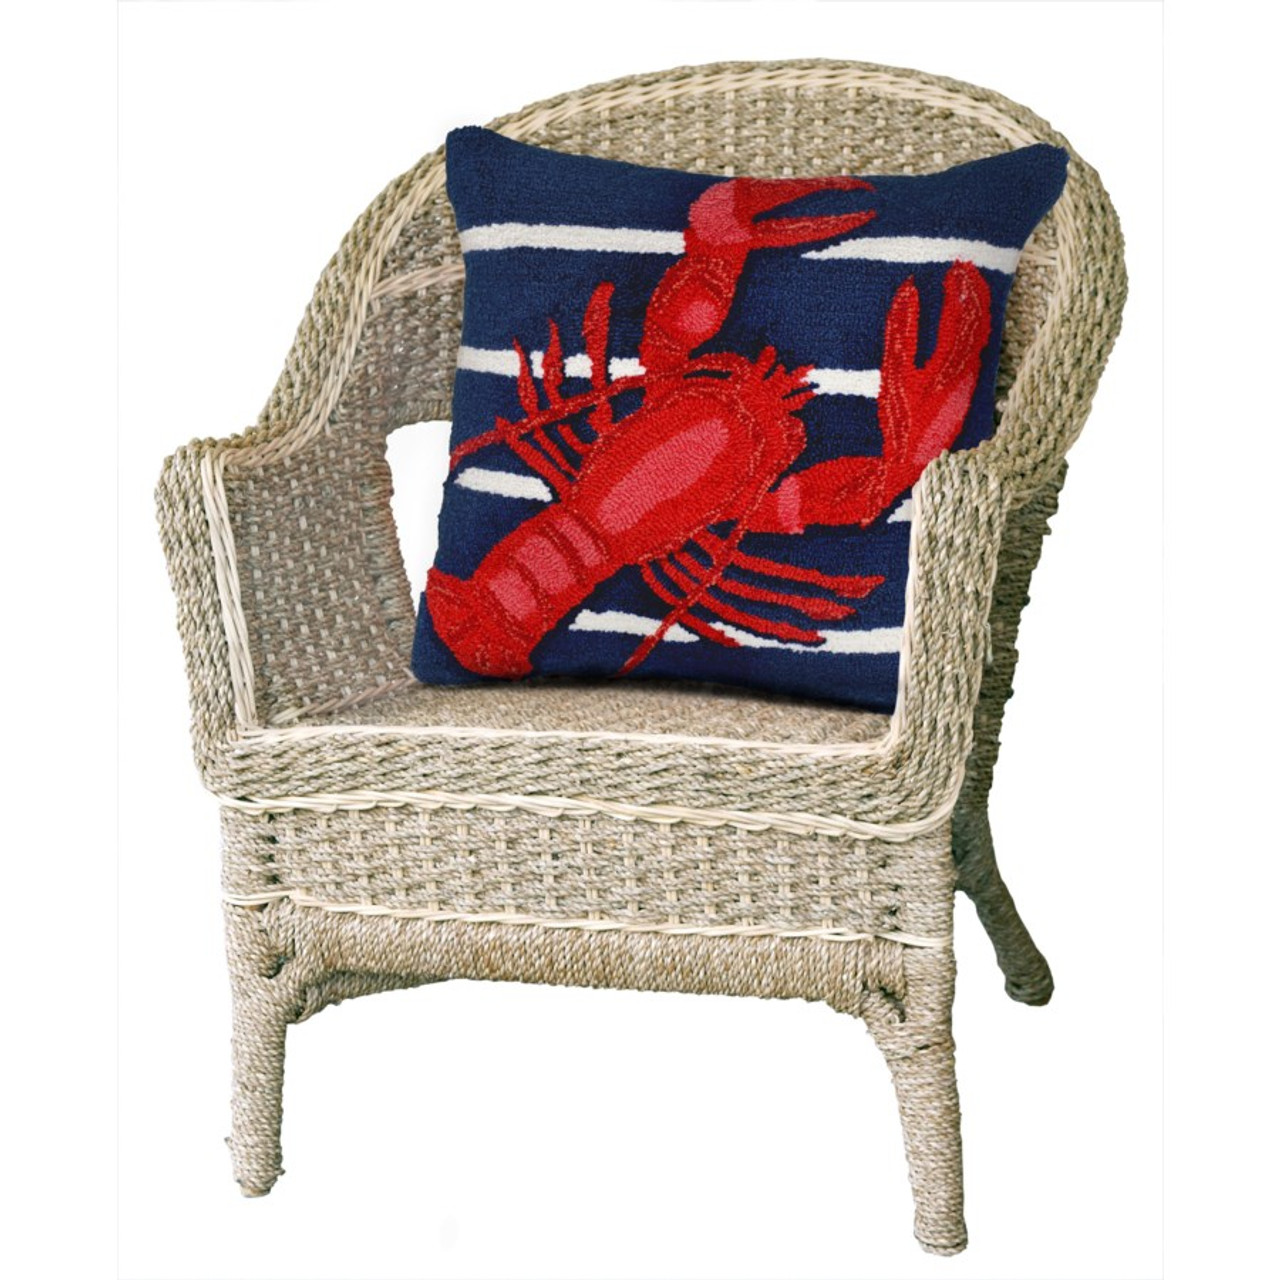 Frontporch Navy Lobster on Stripes Indoor/Outdoor Throw Pillow - Lifestyle 2